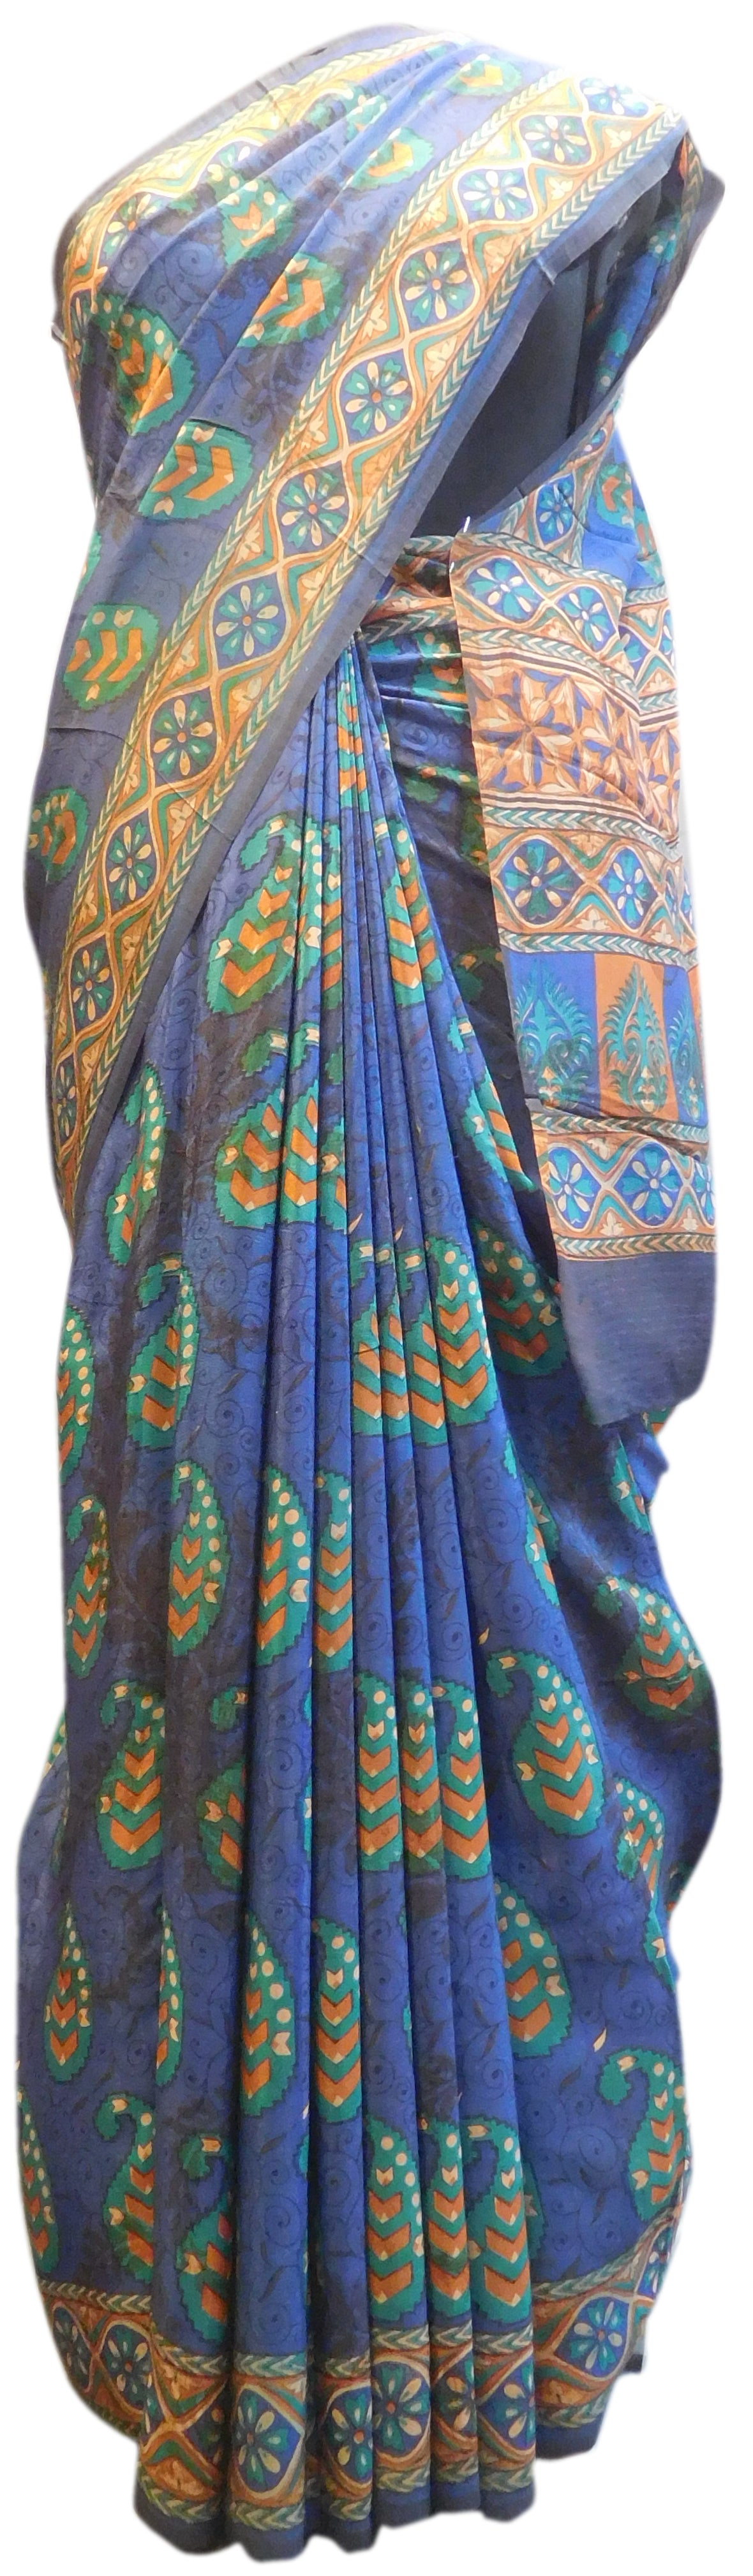 Multicolor Designer Wedding Partywear Pure Crepe Hand Brush Reprinted Kolkata Saree Sari RP159